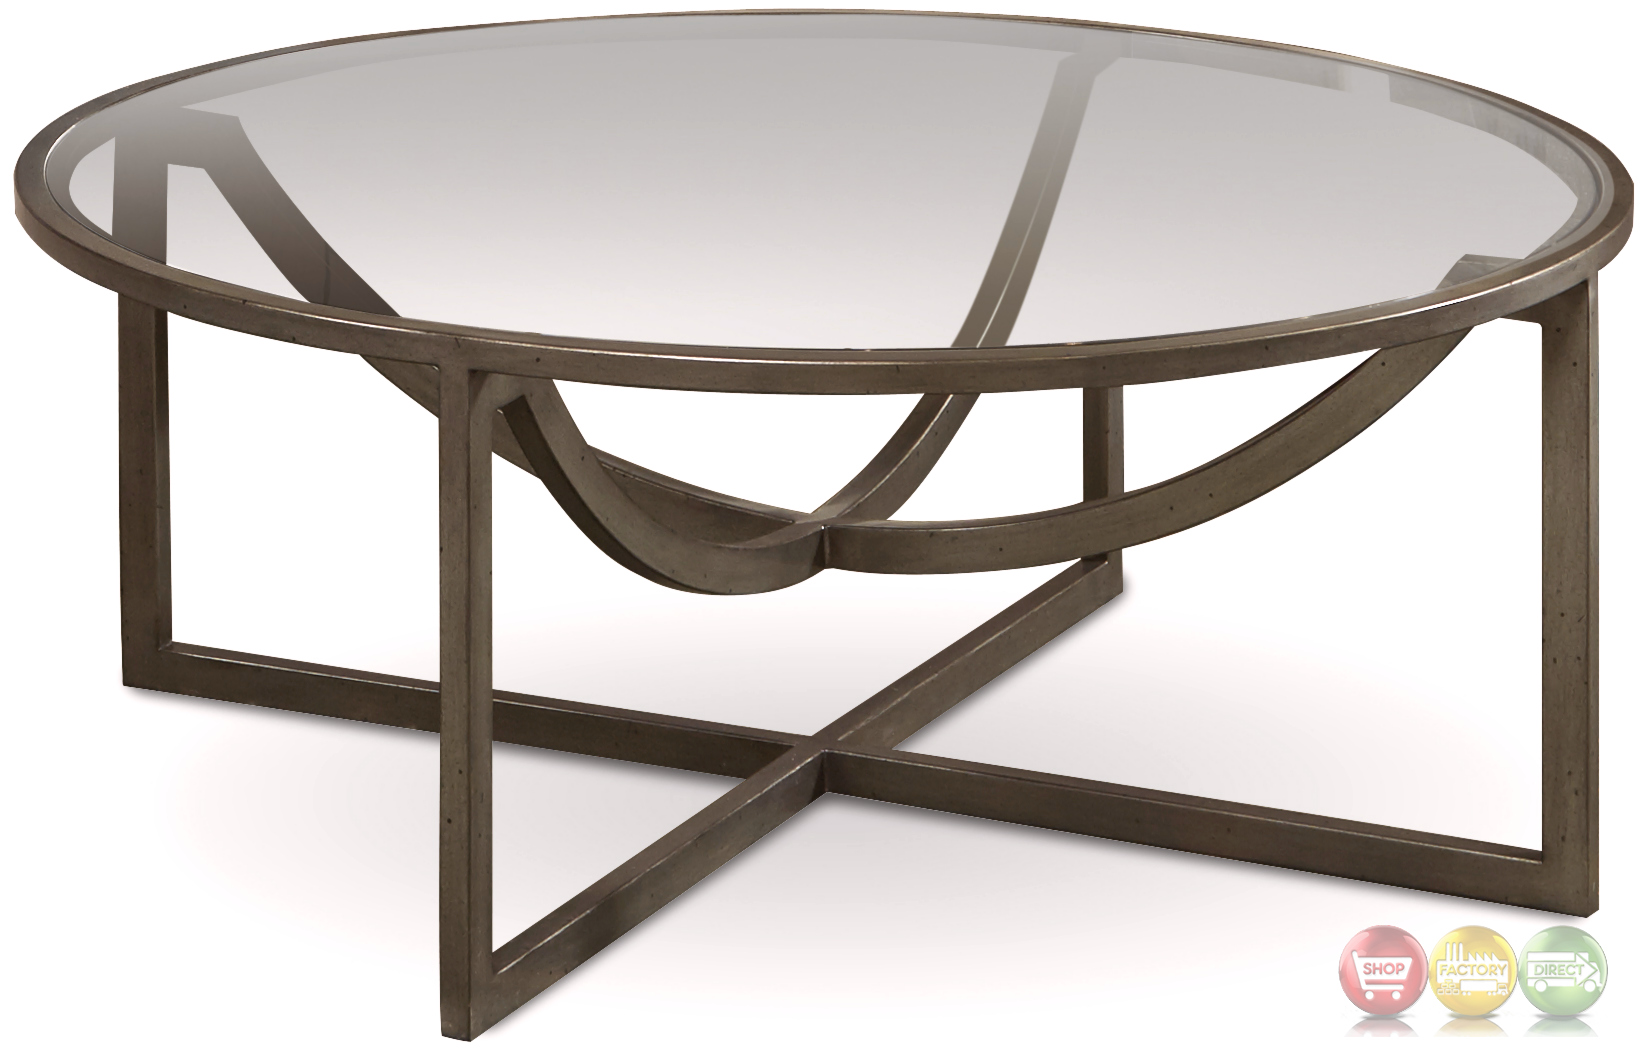 Williamsburg glass top grey metal cocktail table with distressed finish Metal glass top coffee table